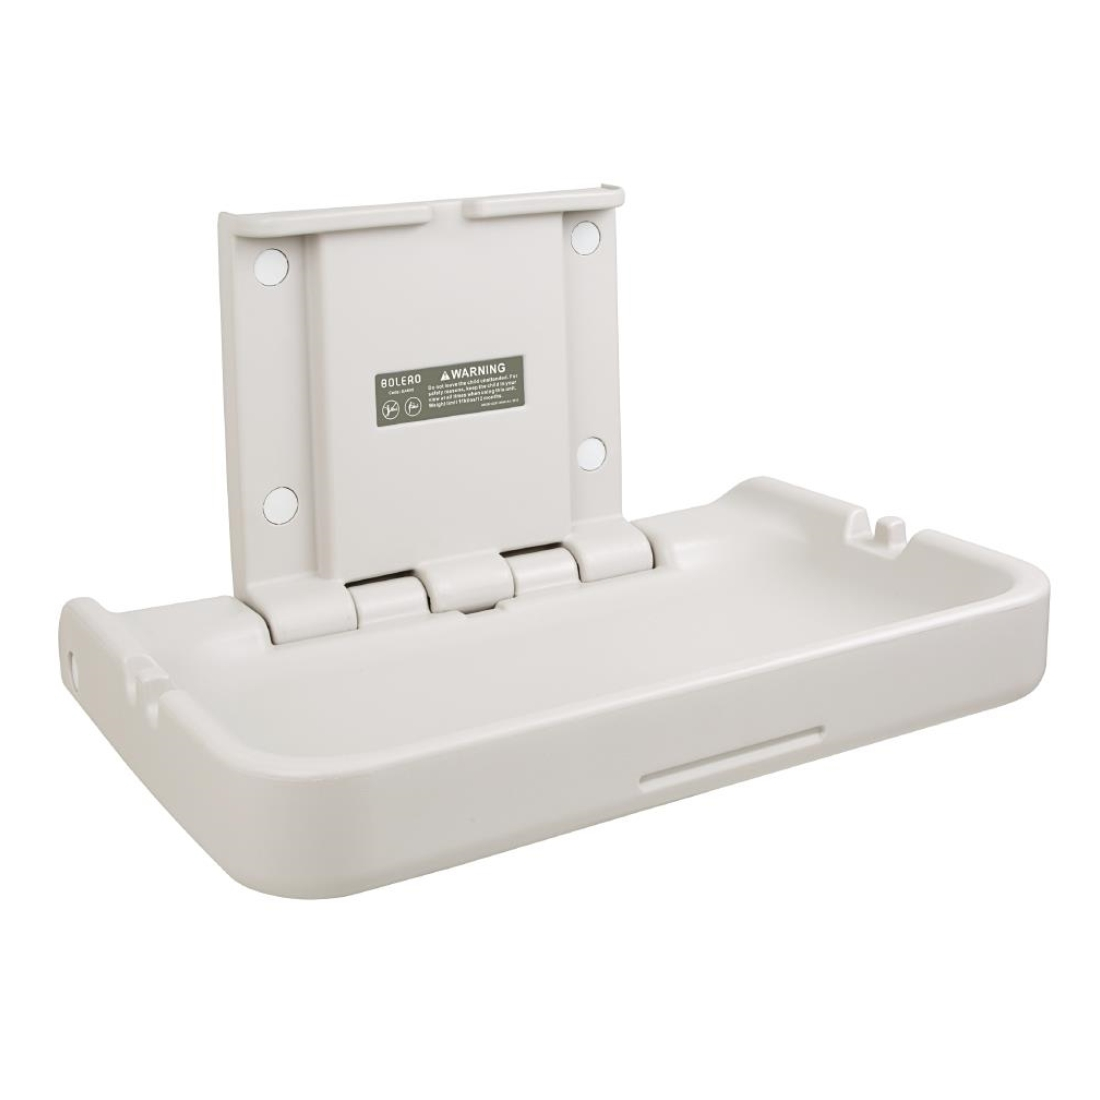 Bolero Baby Changing Station - Horizontal